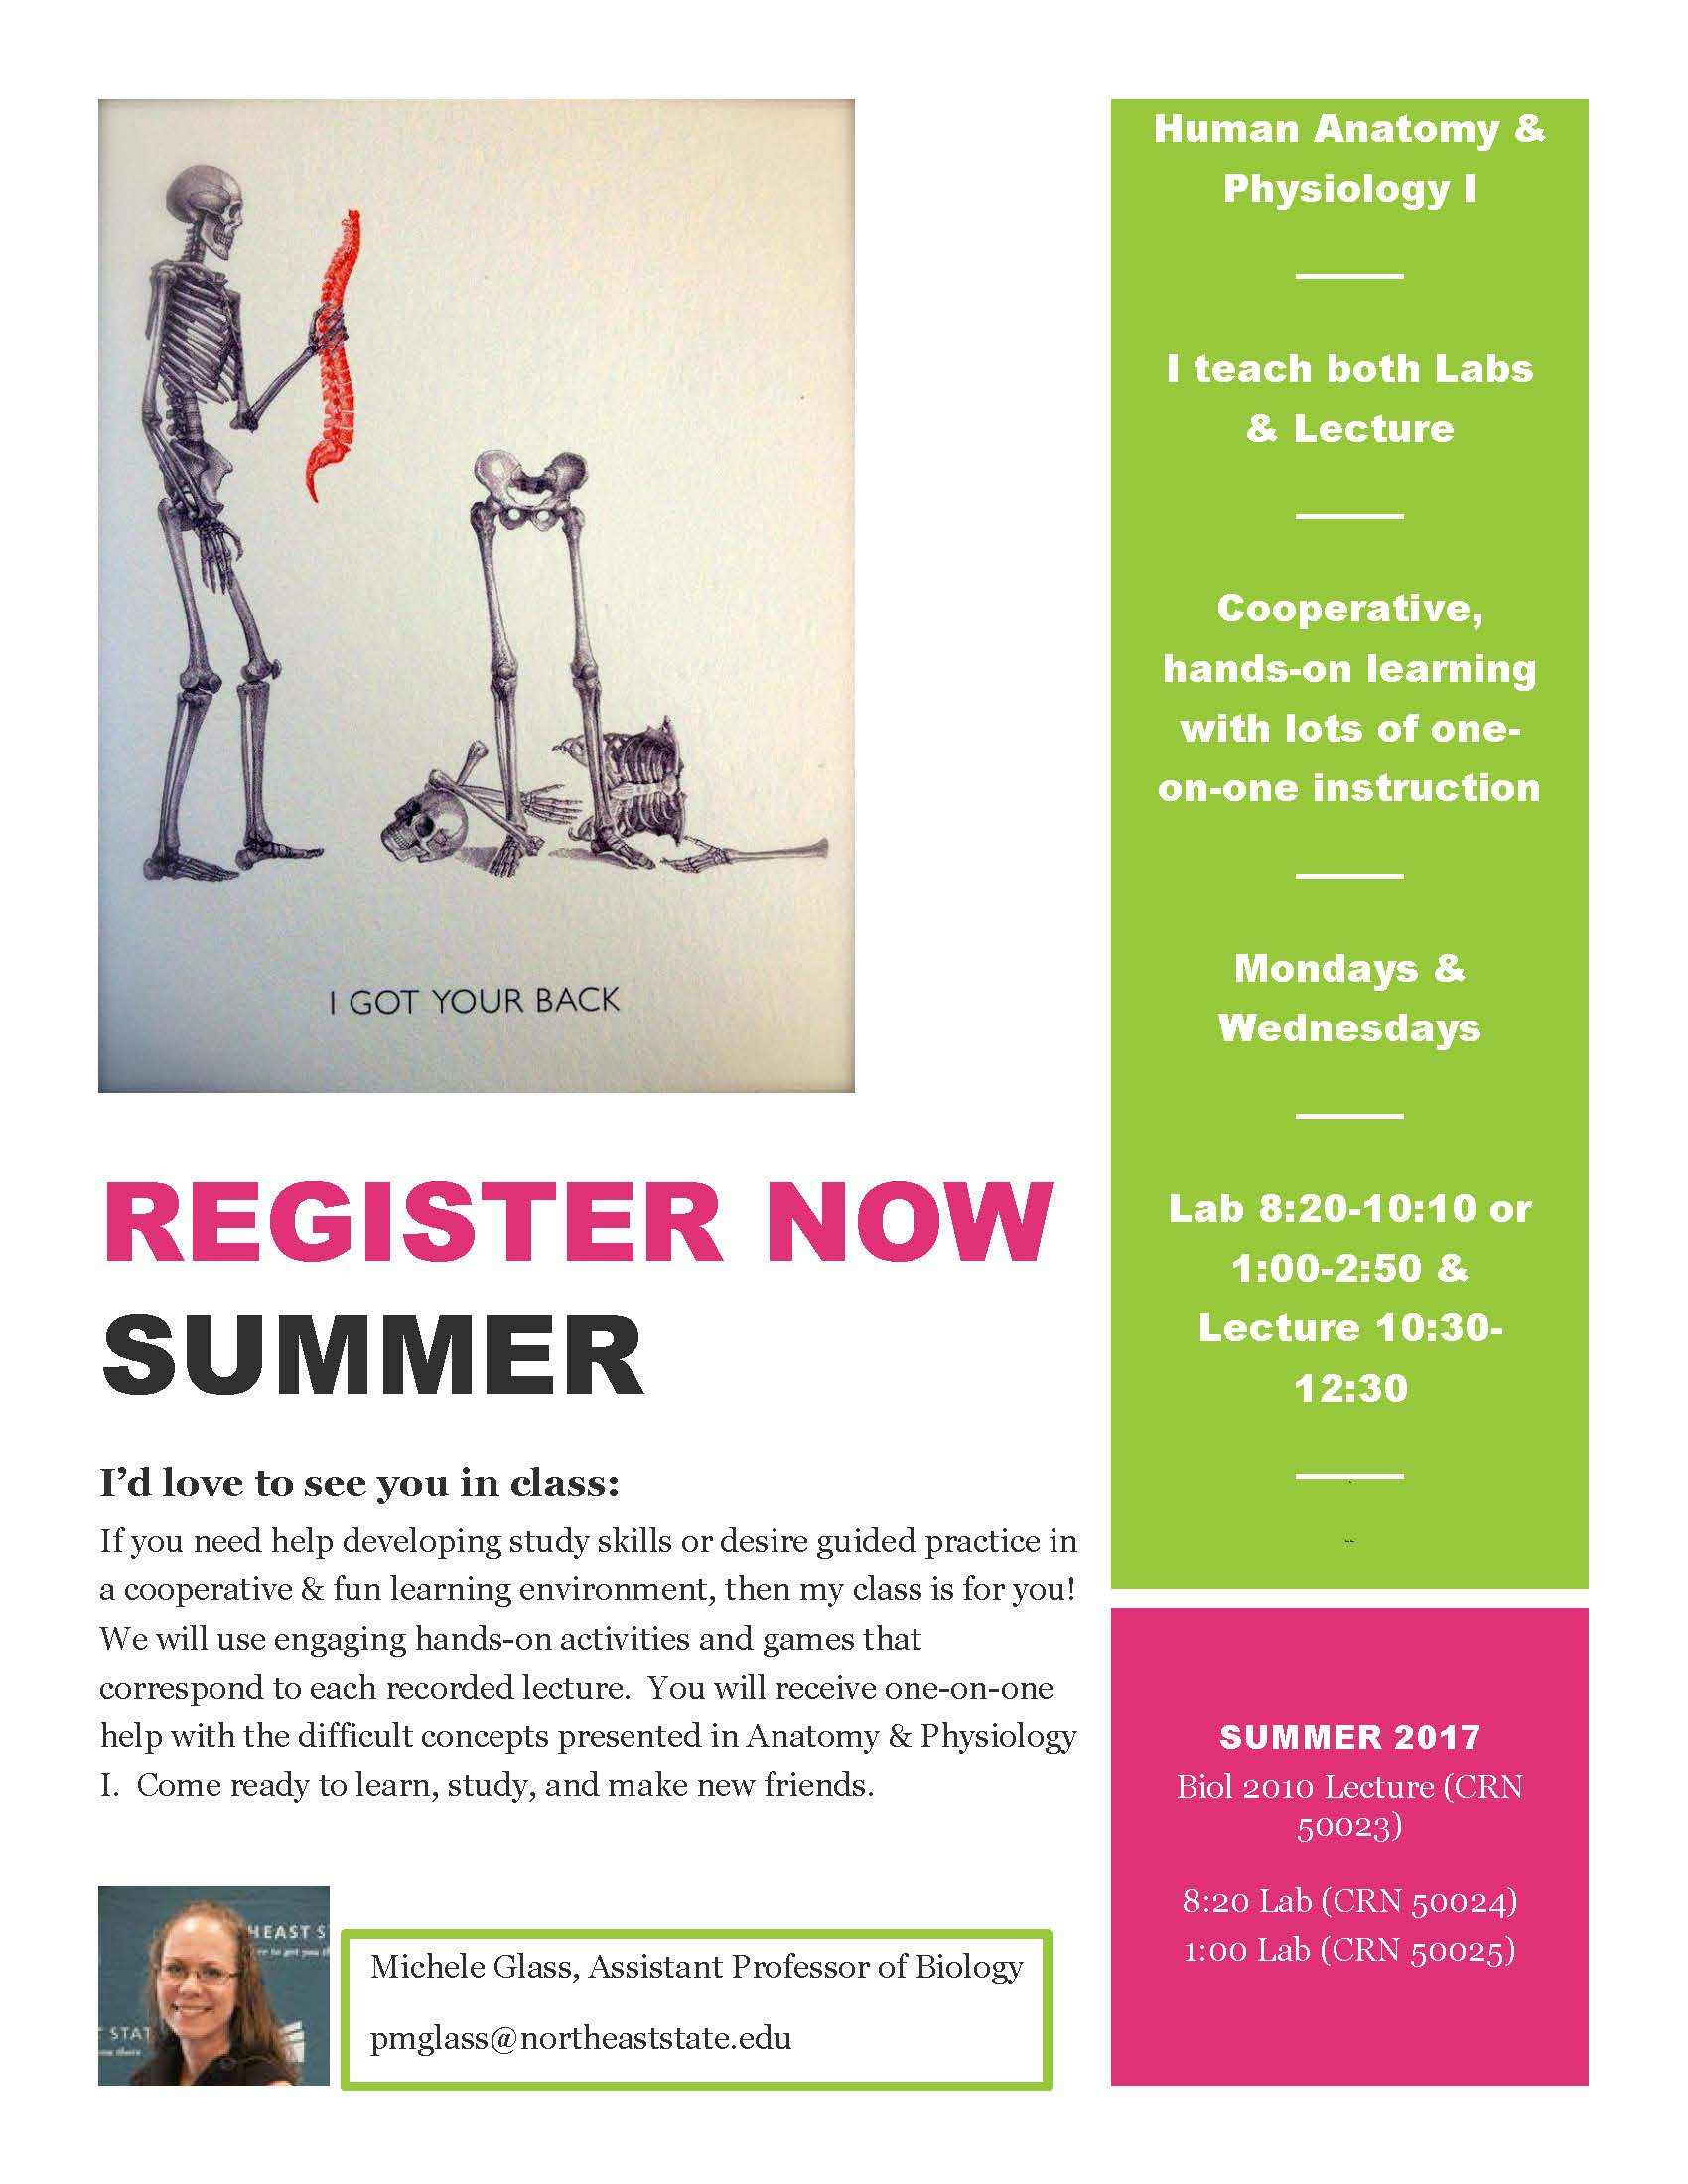 Sign Up for Summer – Anatomy & Physiology I – NORTHEAST NATION